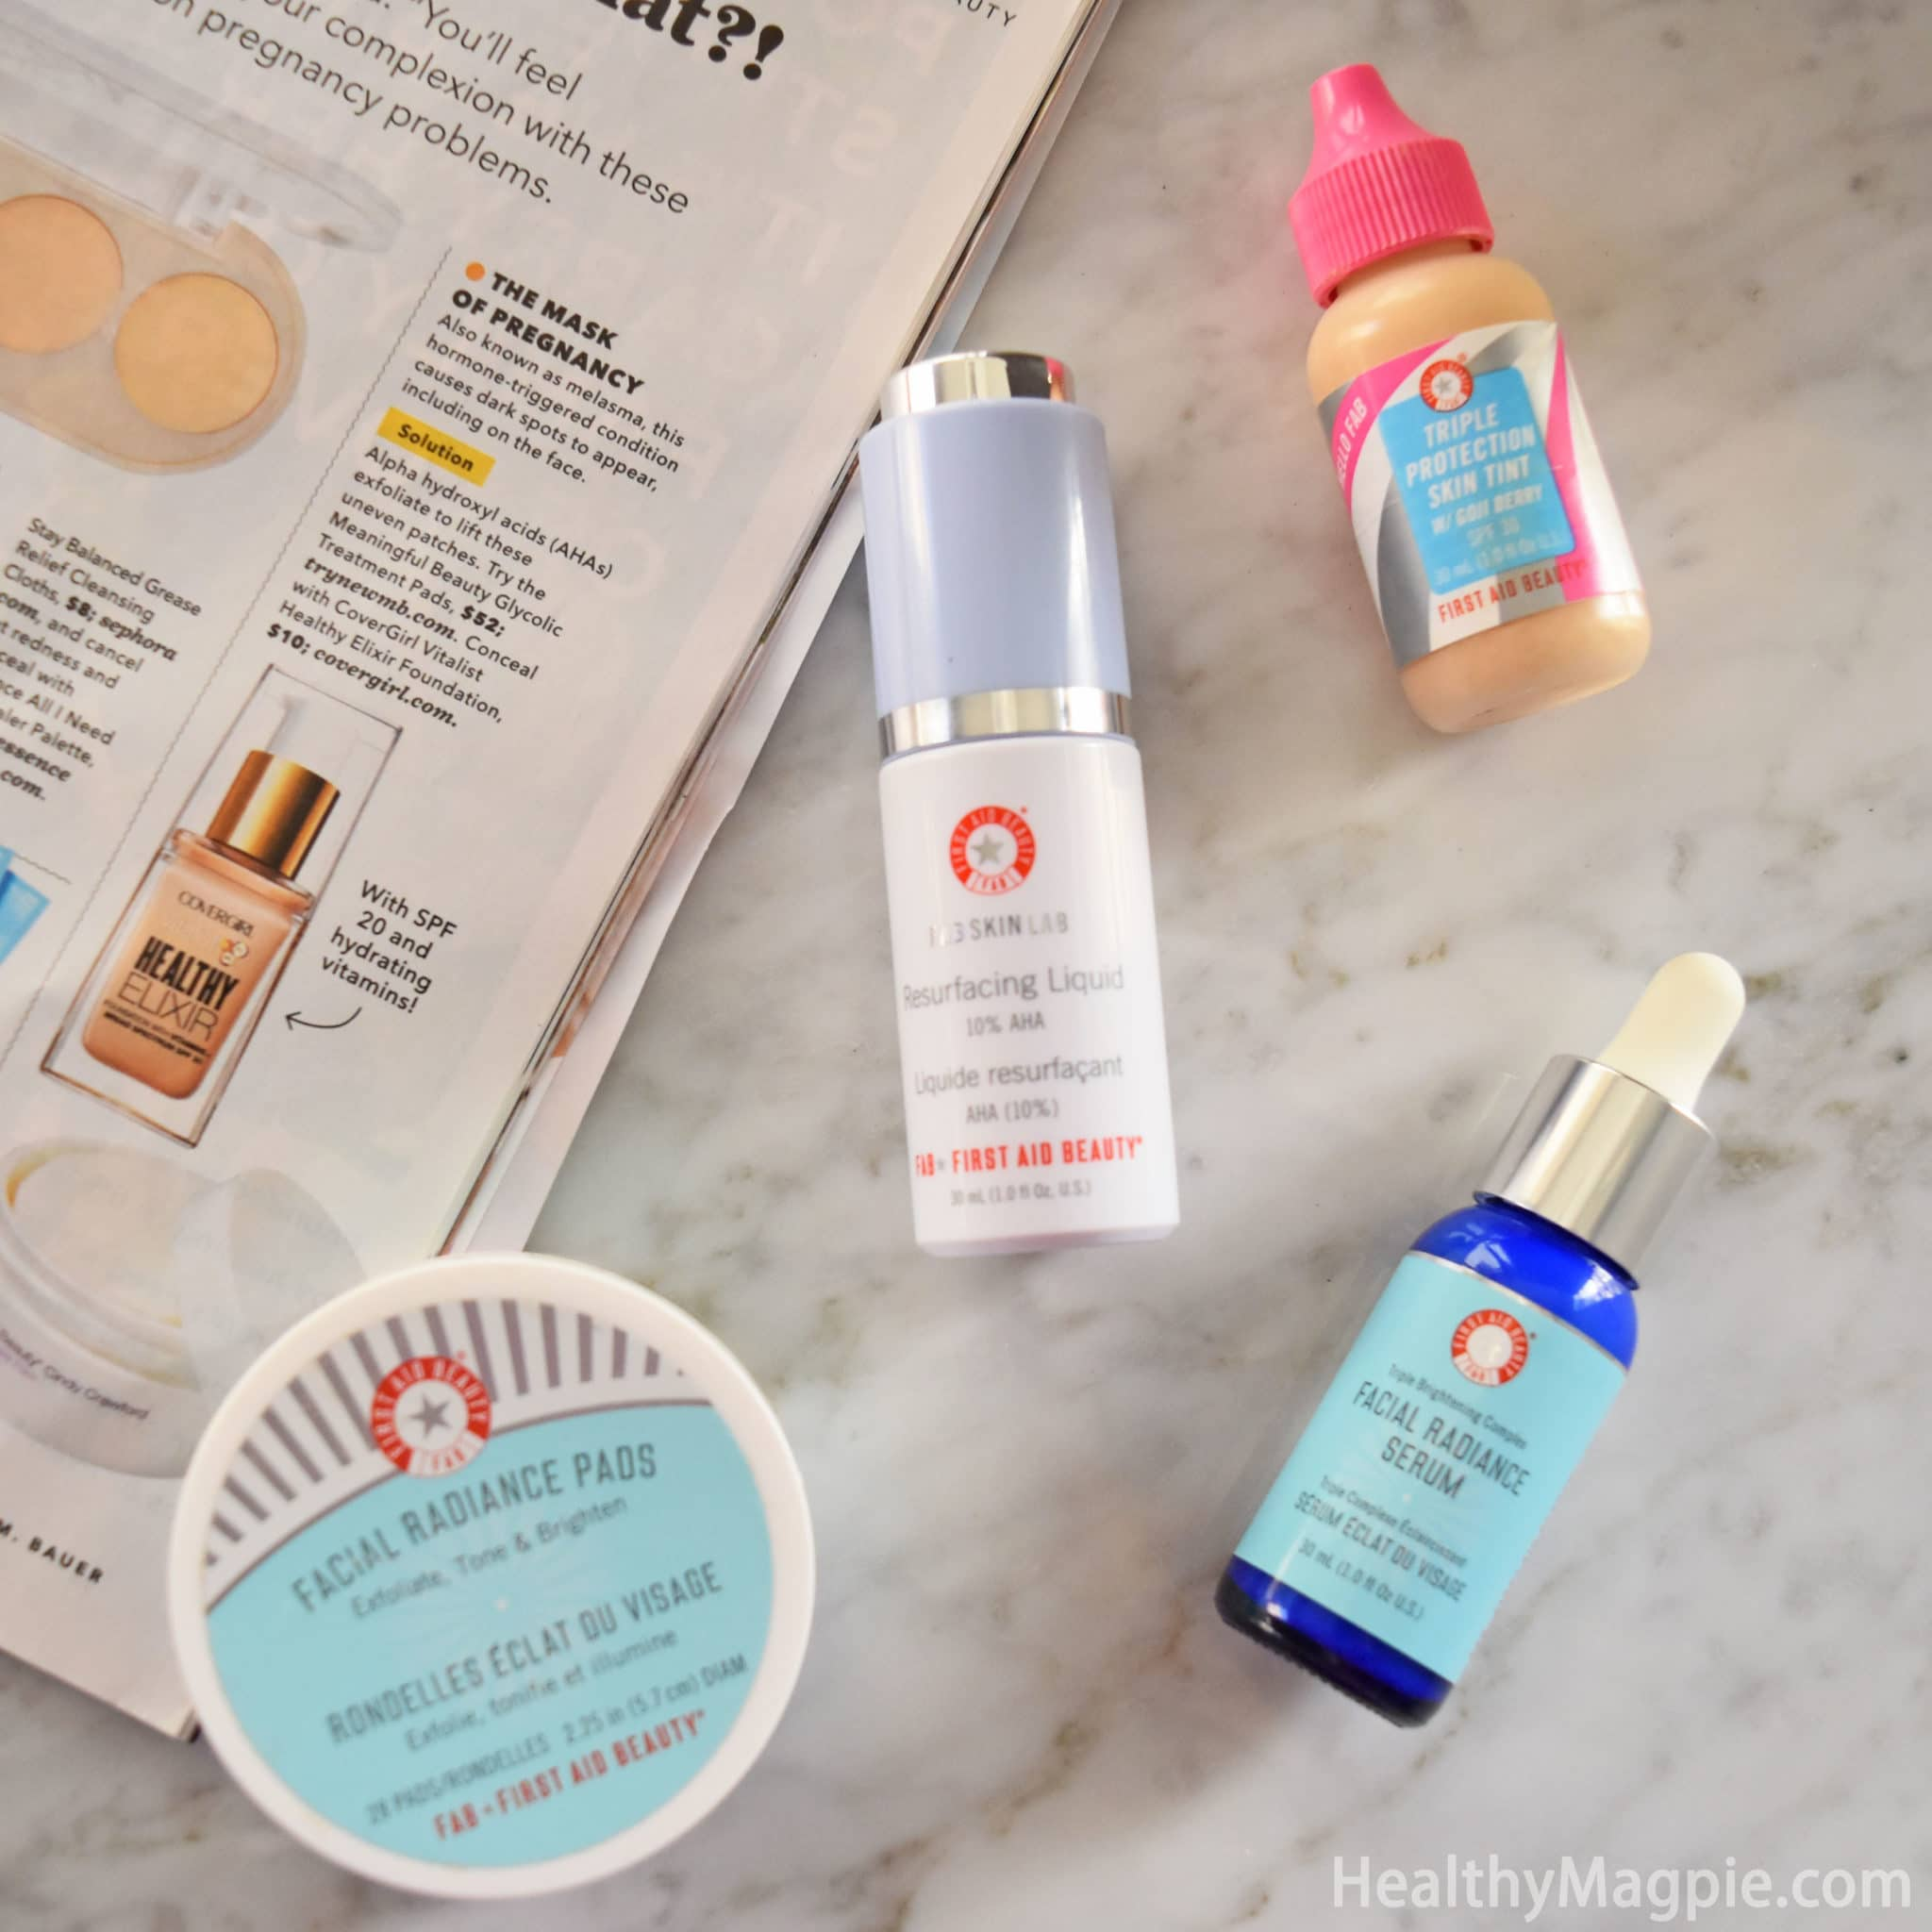 first aid beauty mask review